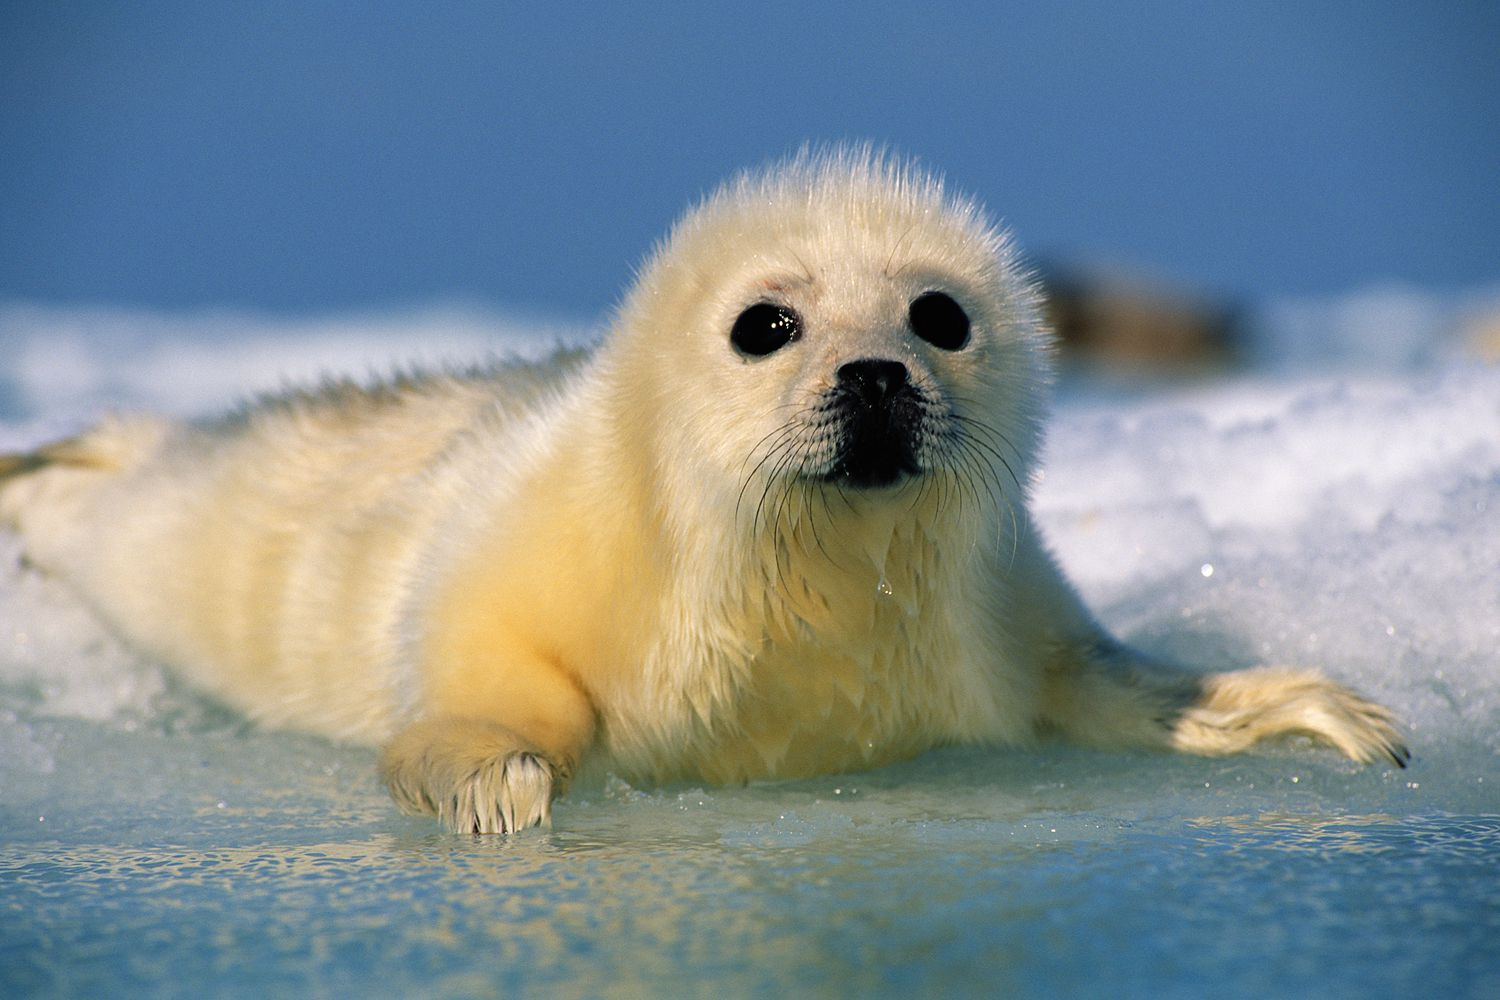 10 Facts About Seals and Sea Lions